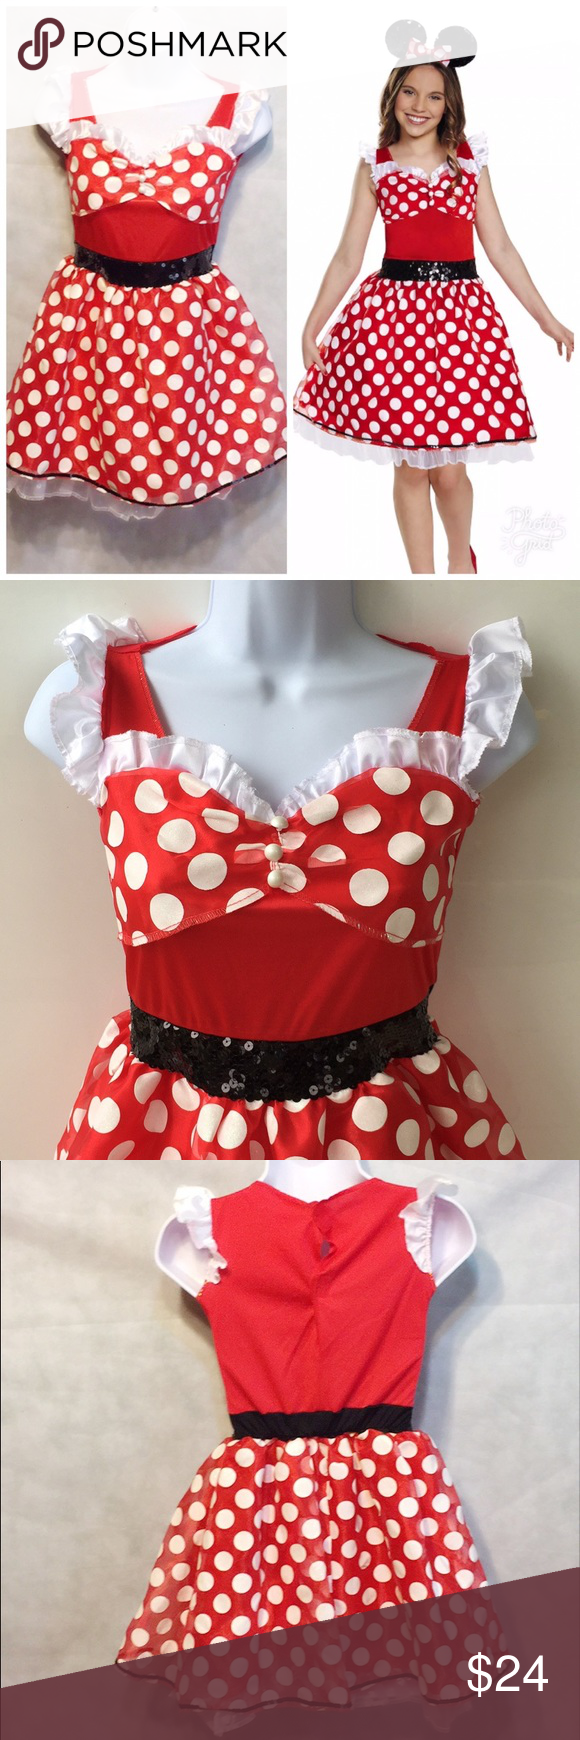 Minnie Mouse Girls Halloween Costume Large 1012 NWT